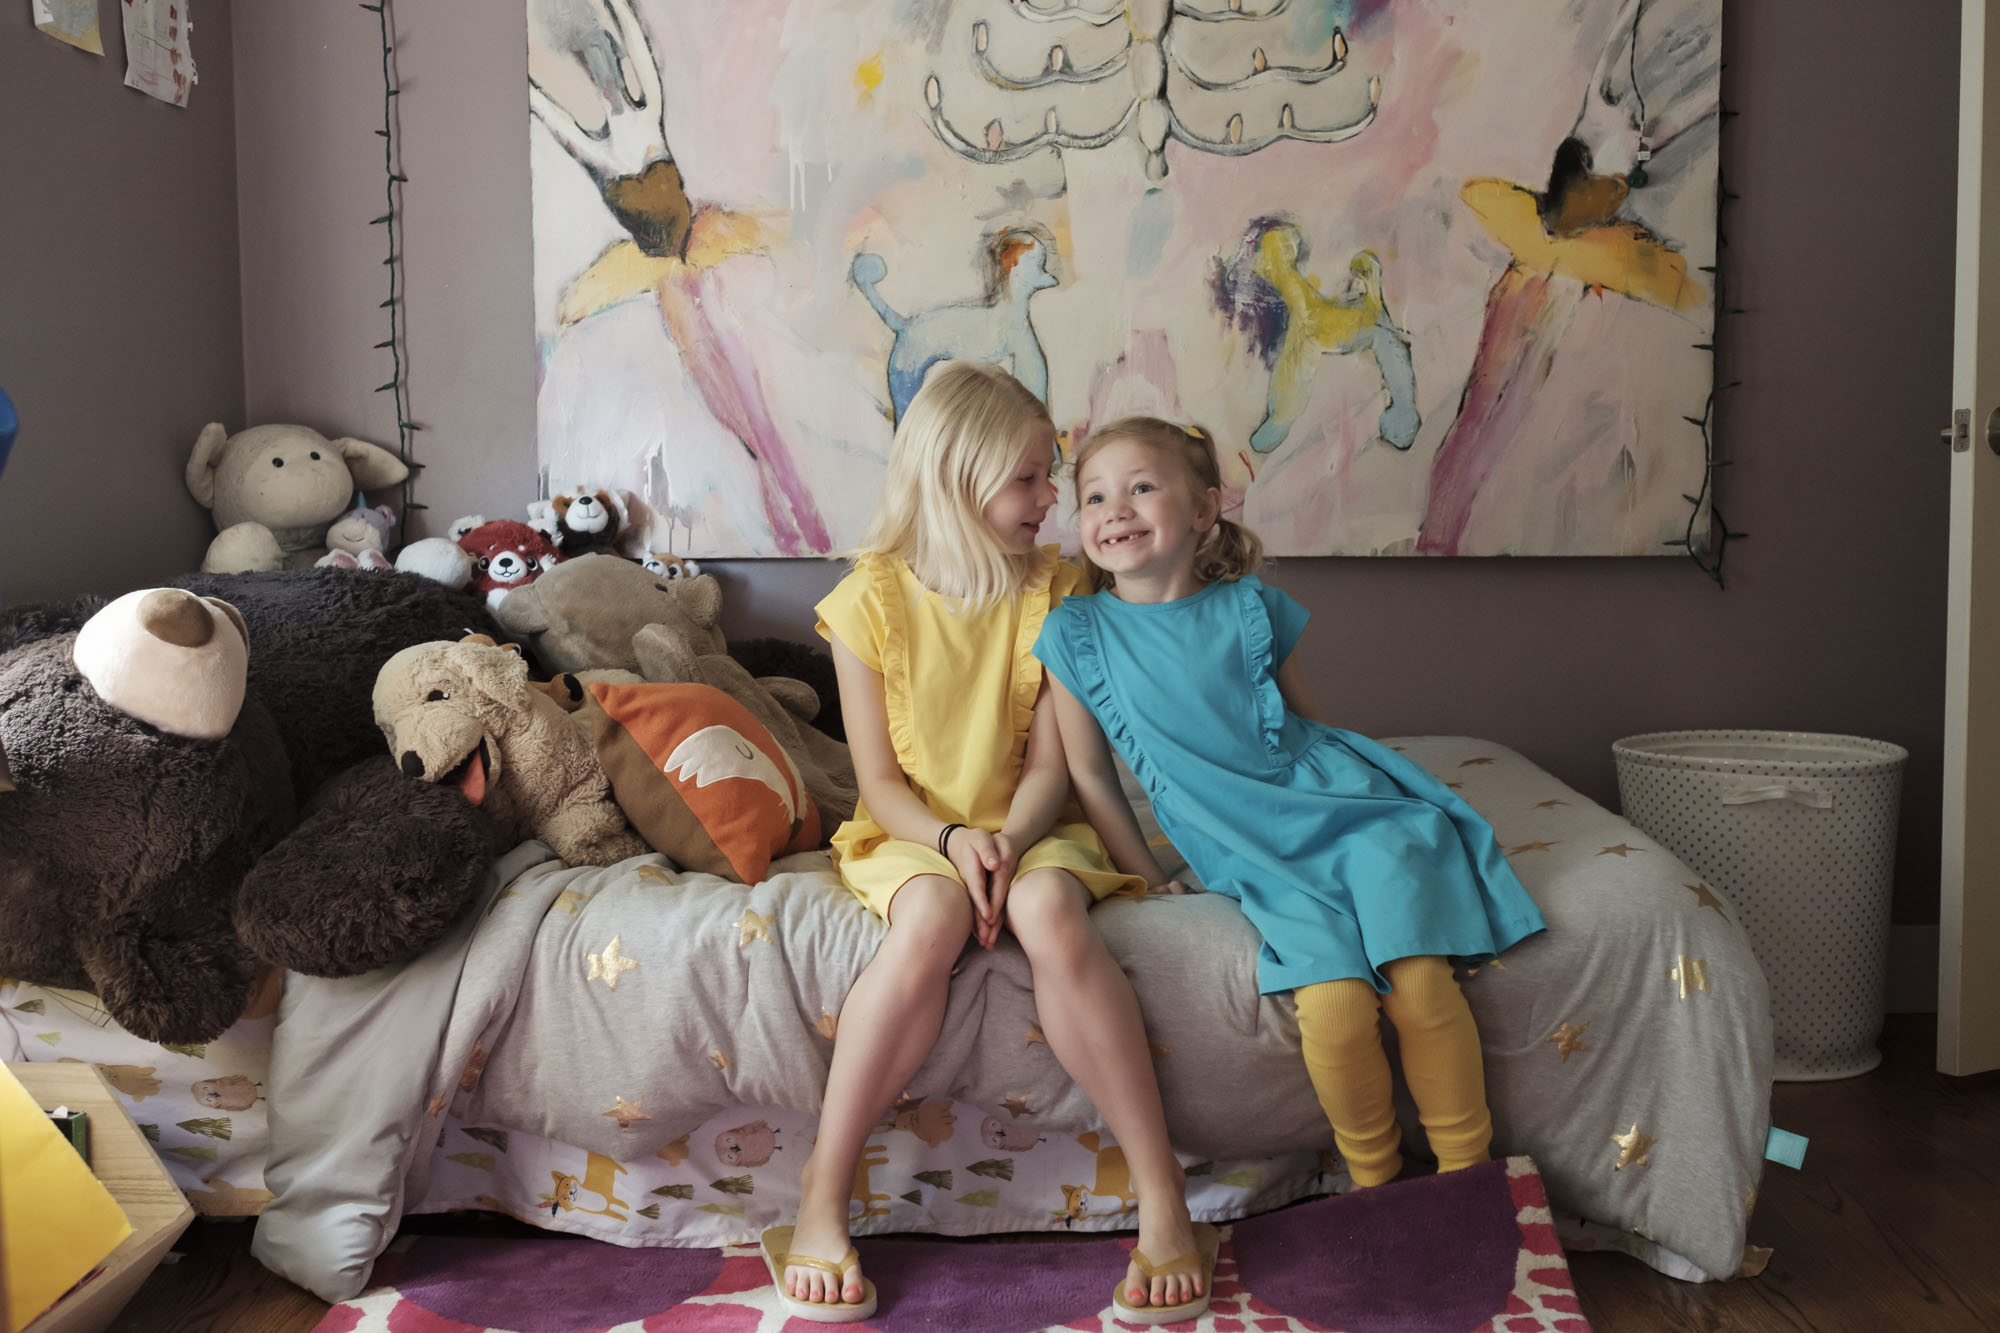 two girls in colorful dresses sitting on a bed